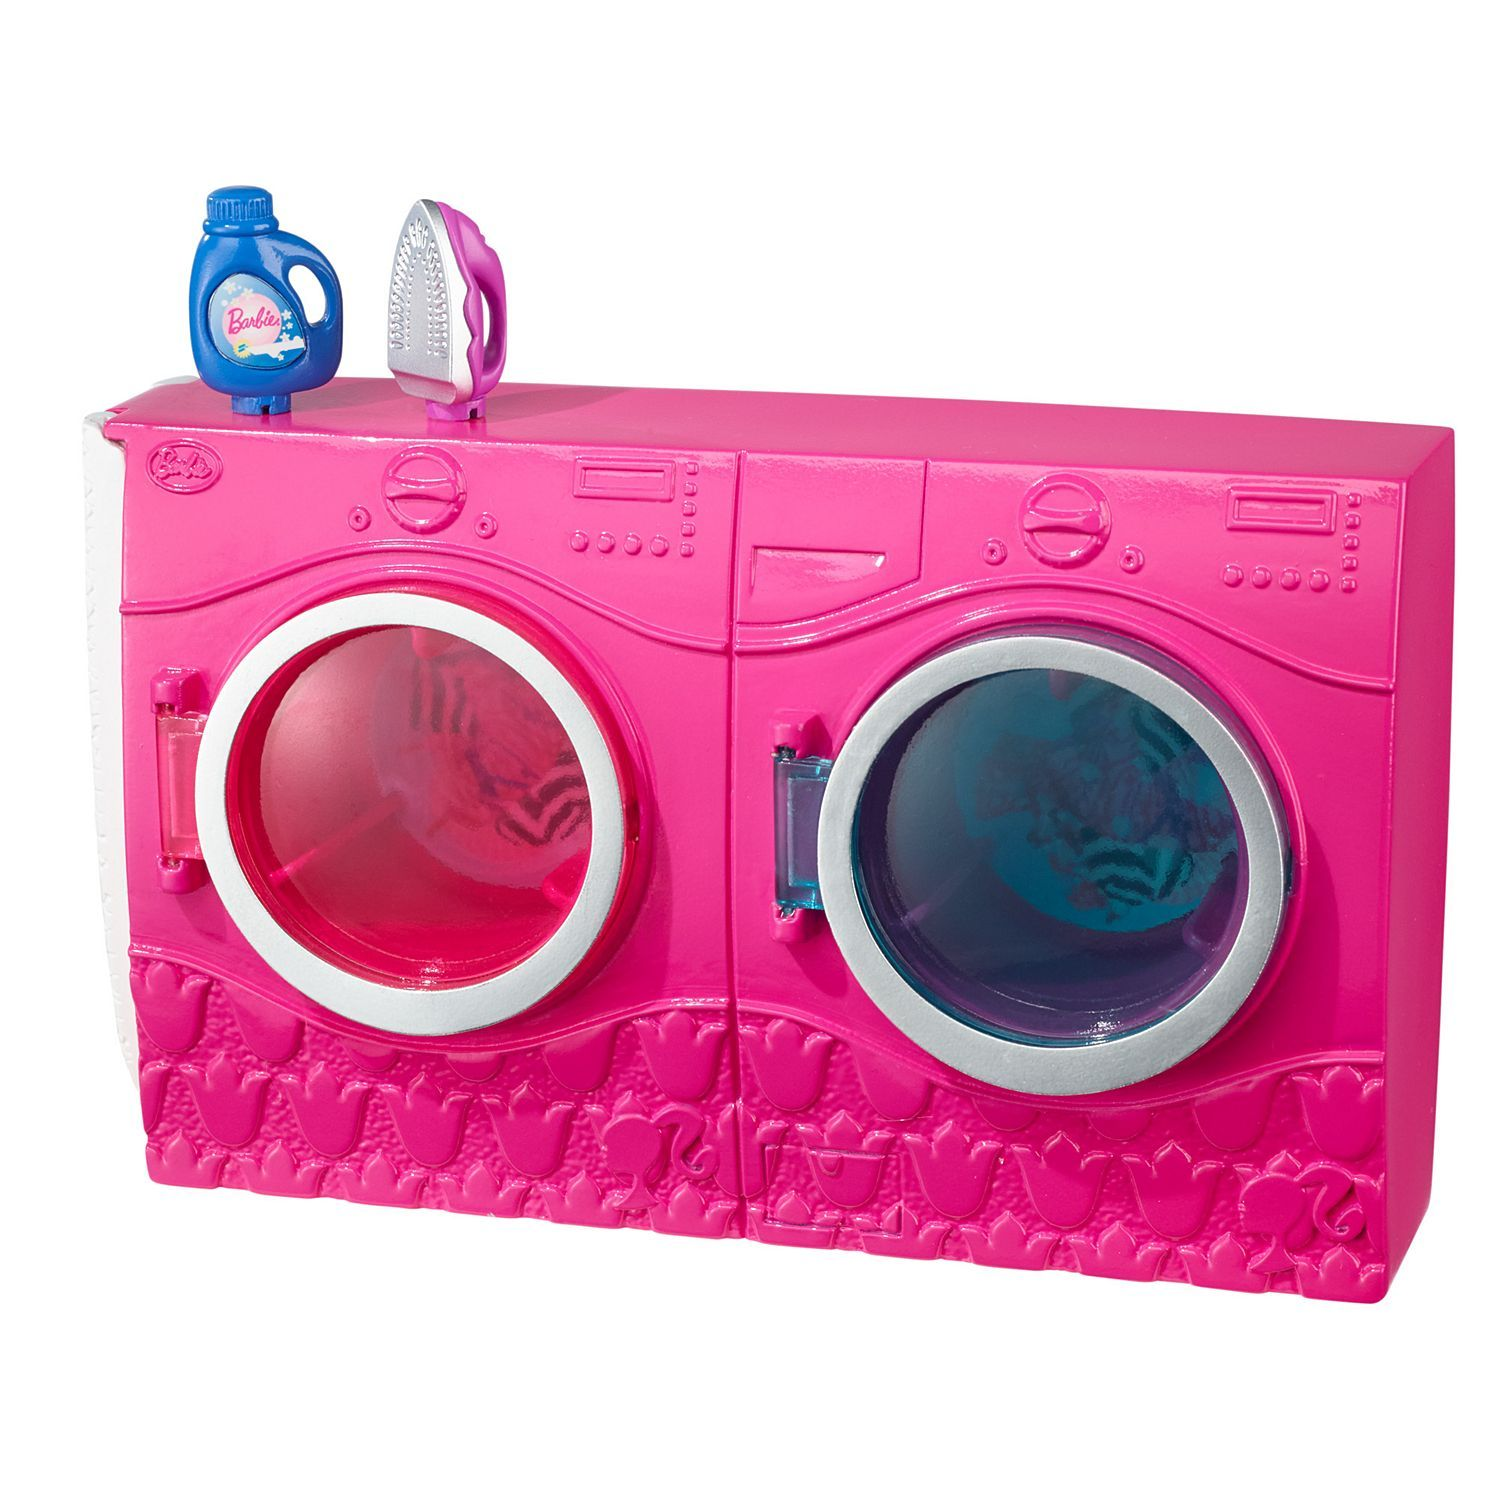 Barbie® Washer & Dryer Set | CFG66 | Barbie #barbiefurniture